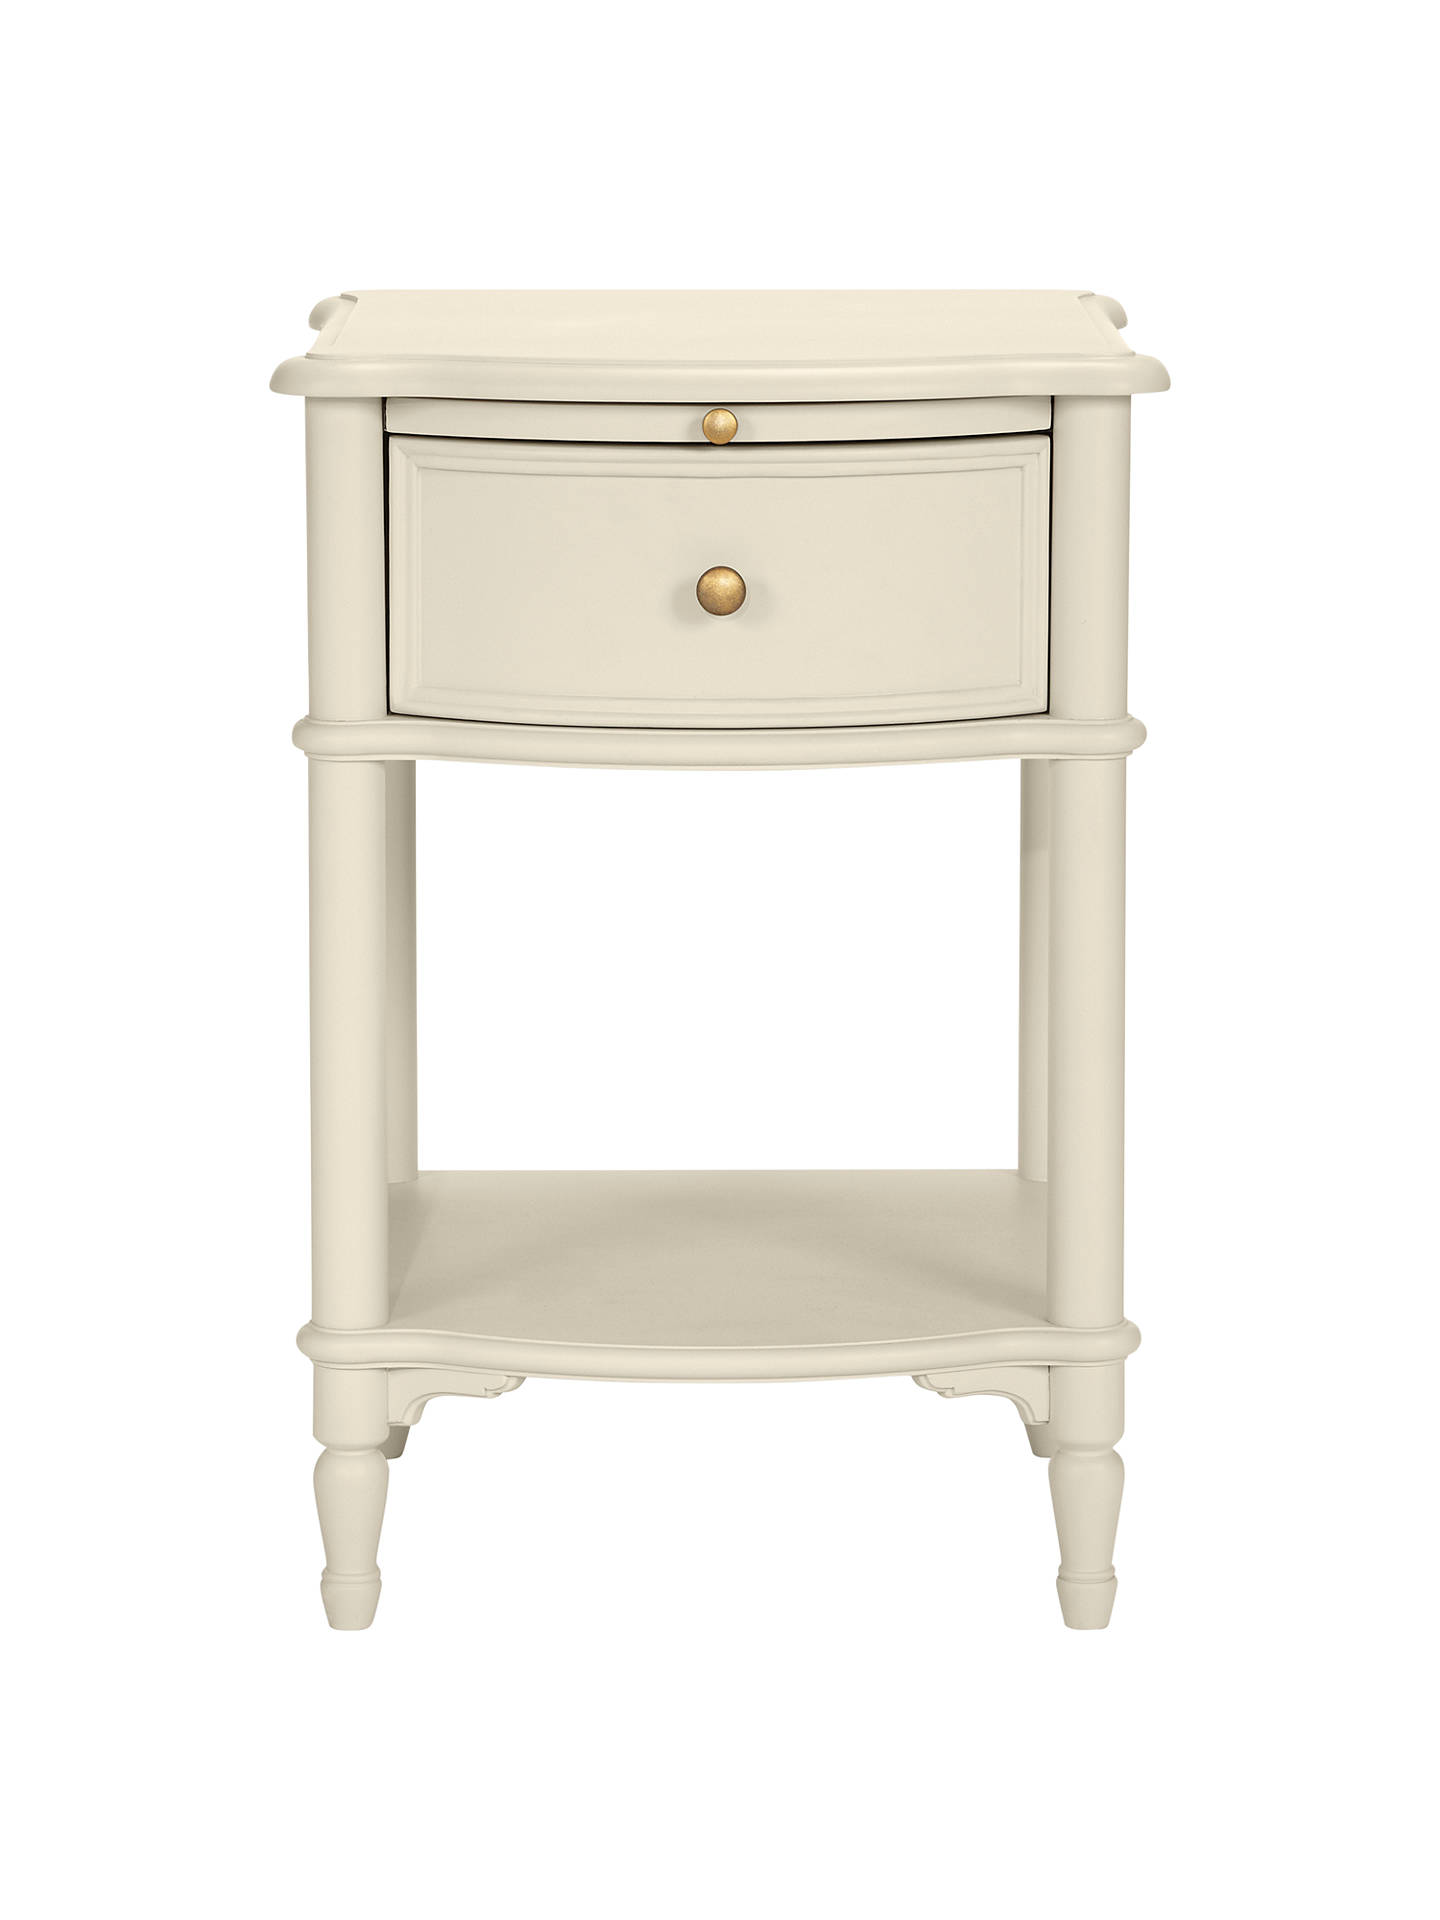 BuyJohn Lewis & Partners Ivybridge 1 Drawer Bedside Table Online at johnlewis.com